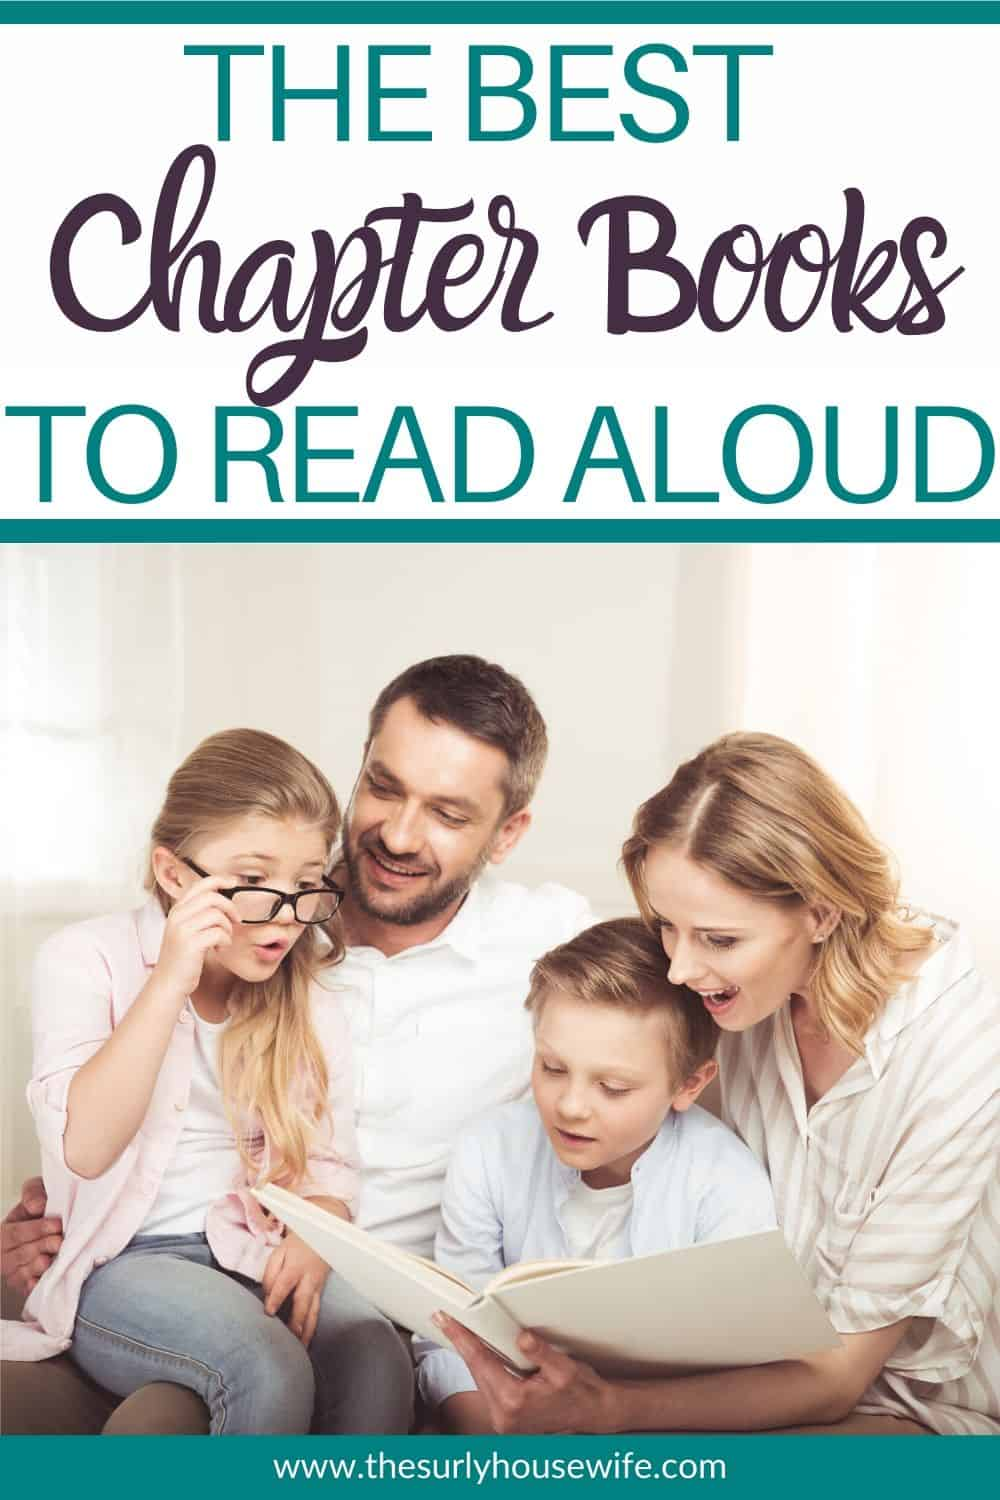 Looking for chapter books to read aloud? Searching for the perfect read aloud for kids ages 5-12? Whether you are looking for read aloud for families or the best read aloud for your children, check out this post! It has over 25 amazing chapter book read aloud perfect for all ages!